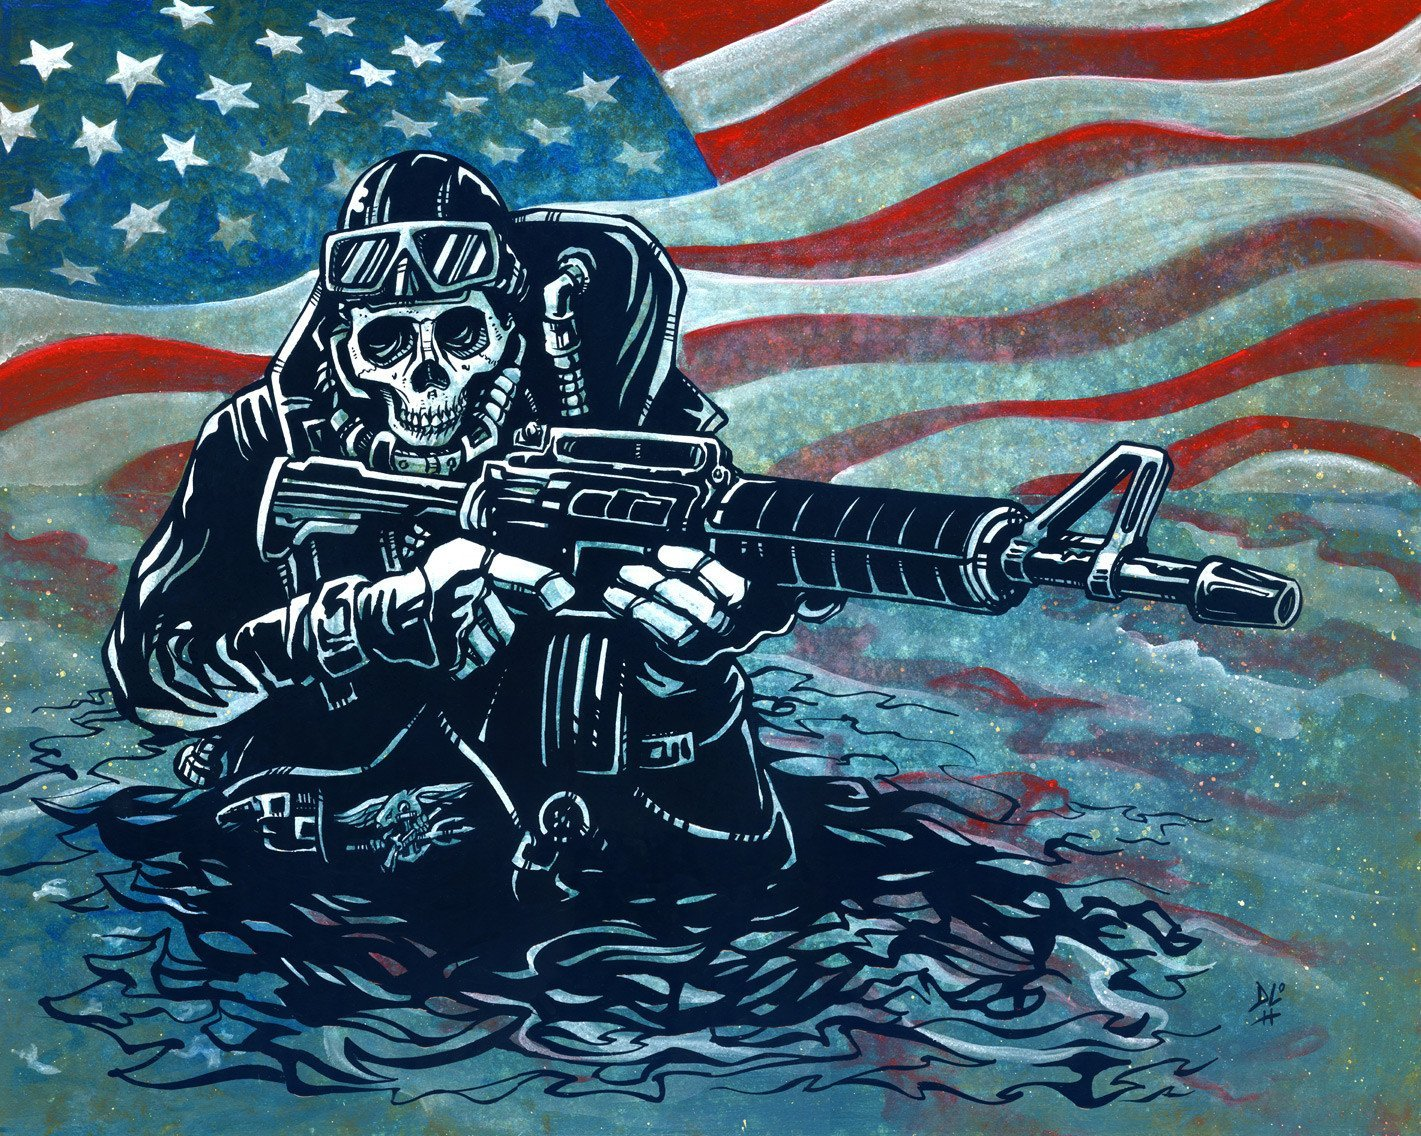 US Navy SEAL by Day of the Dead Artist David Lozeau, Dia de los Muertos, Muertos, Sugar Skull